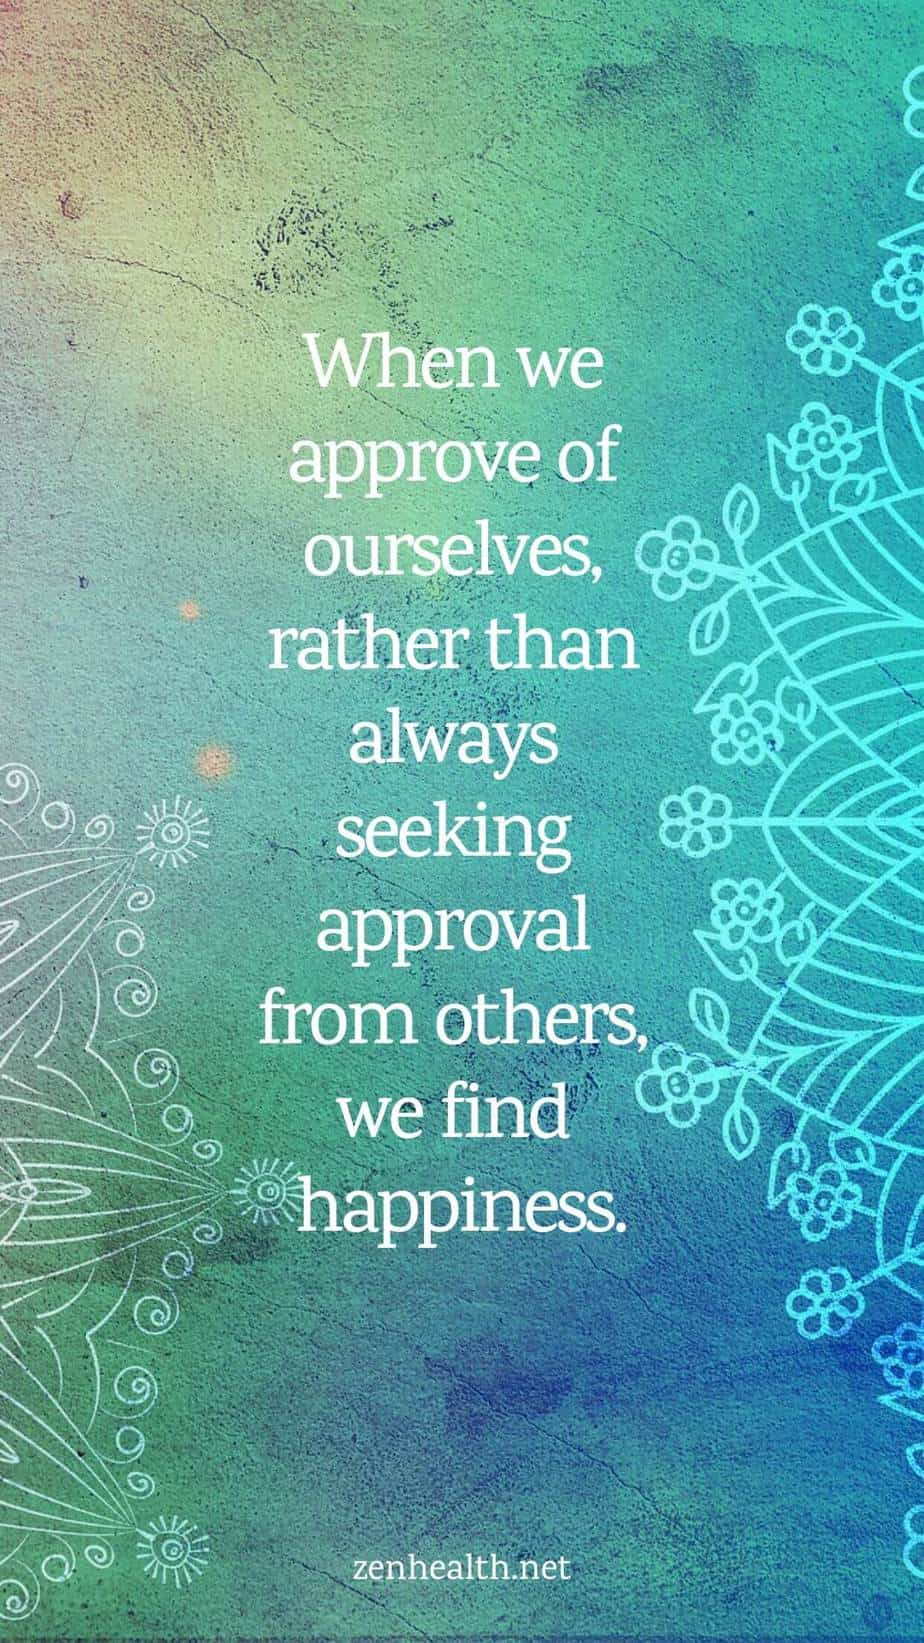 Happiness quotes: When we approve of ourselves, rather than always seeking approval from others, we find happiness.